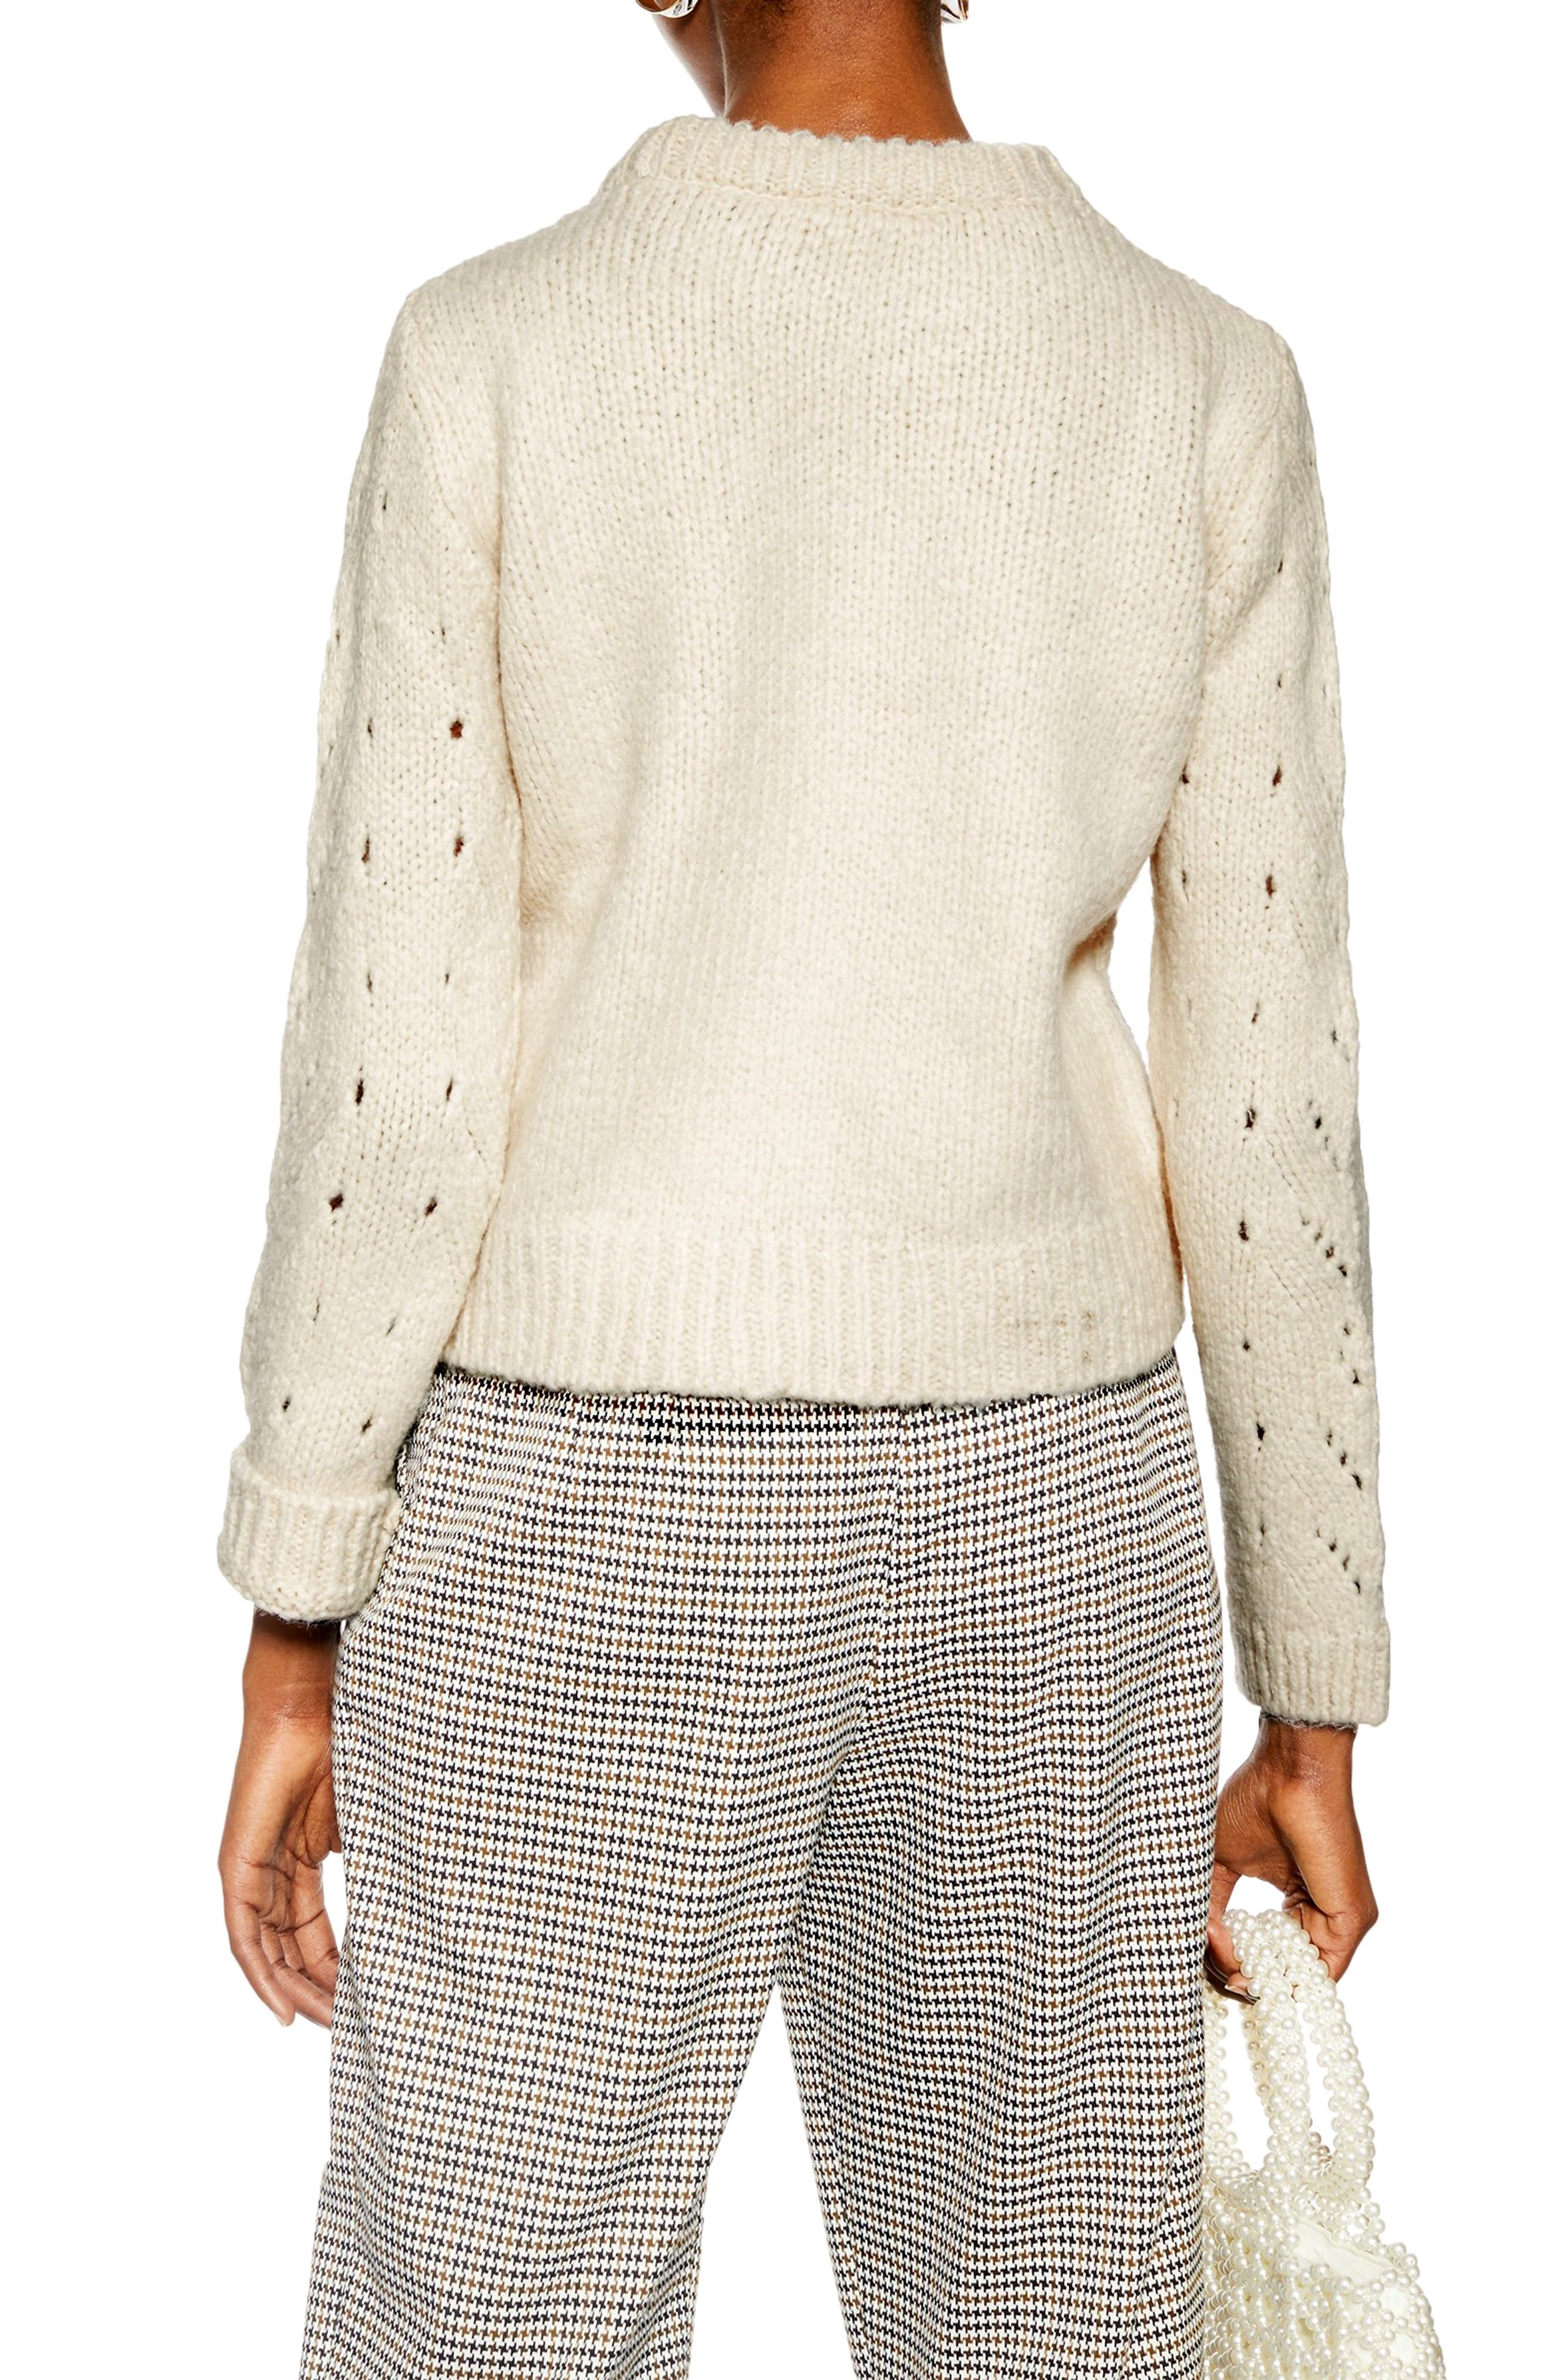 TOPSHOP, Pointelle Lace Sweater, Alternate thumbnail 2, color, IVORY